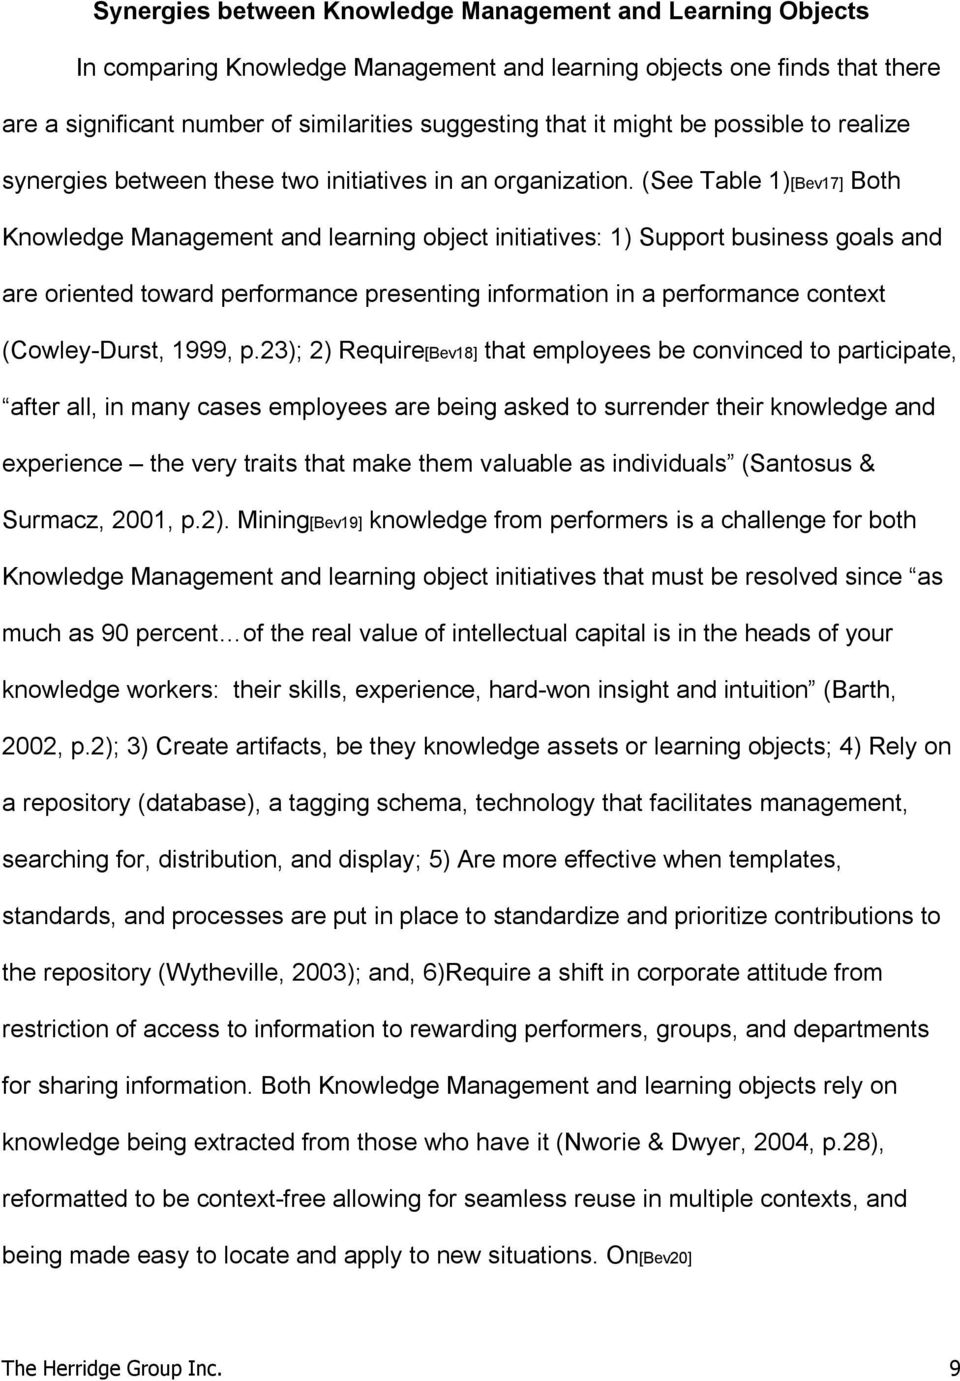 (See Table 1)[Bev17] Both Knowledge Management and learning object initiatives: 1) Support business goals and are oriented toward performance presenting information in a performance context